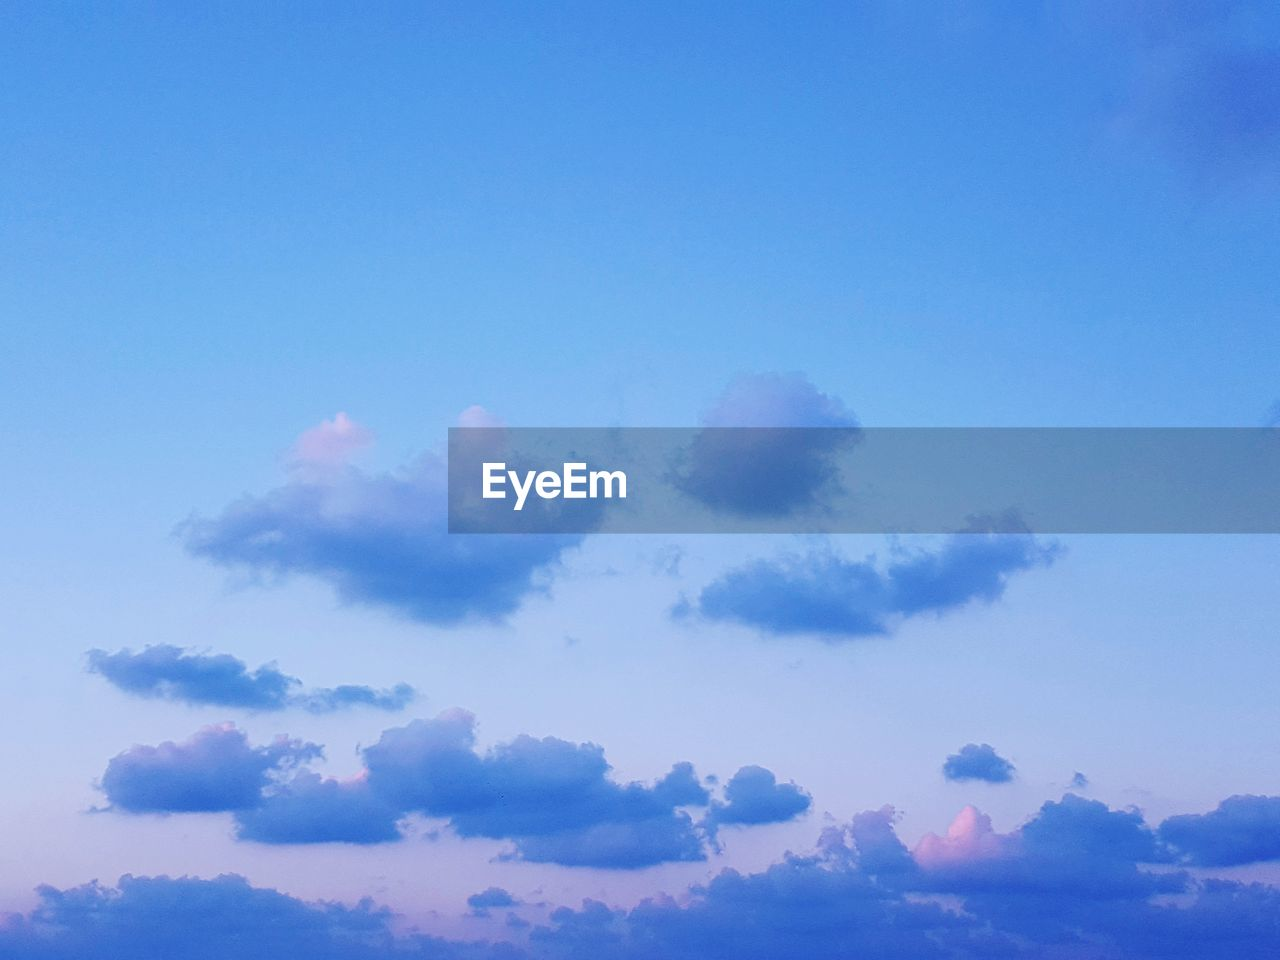 sky, cloud - sky, beauty in nature, low angle view, blue, tranquility, tranquil scene, scenics - nature, nature, no people, day, outdoors, idyllic, copy space, backgrounds, sunlight, full frame, sunset, cloudscape, heaven, meteorology